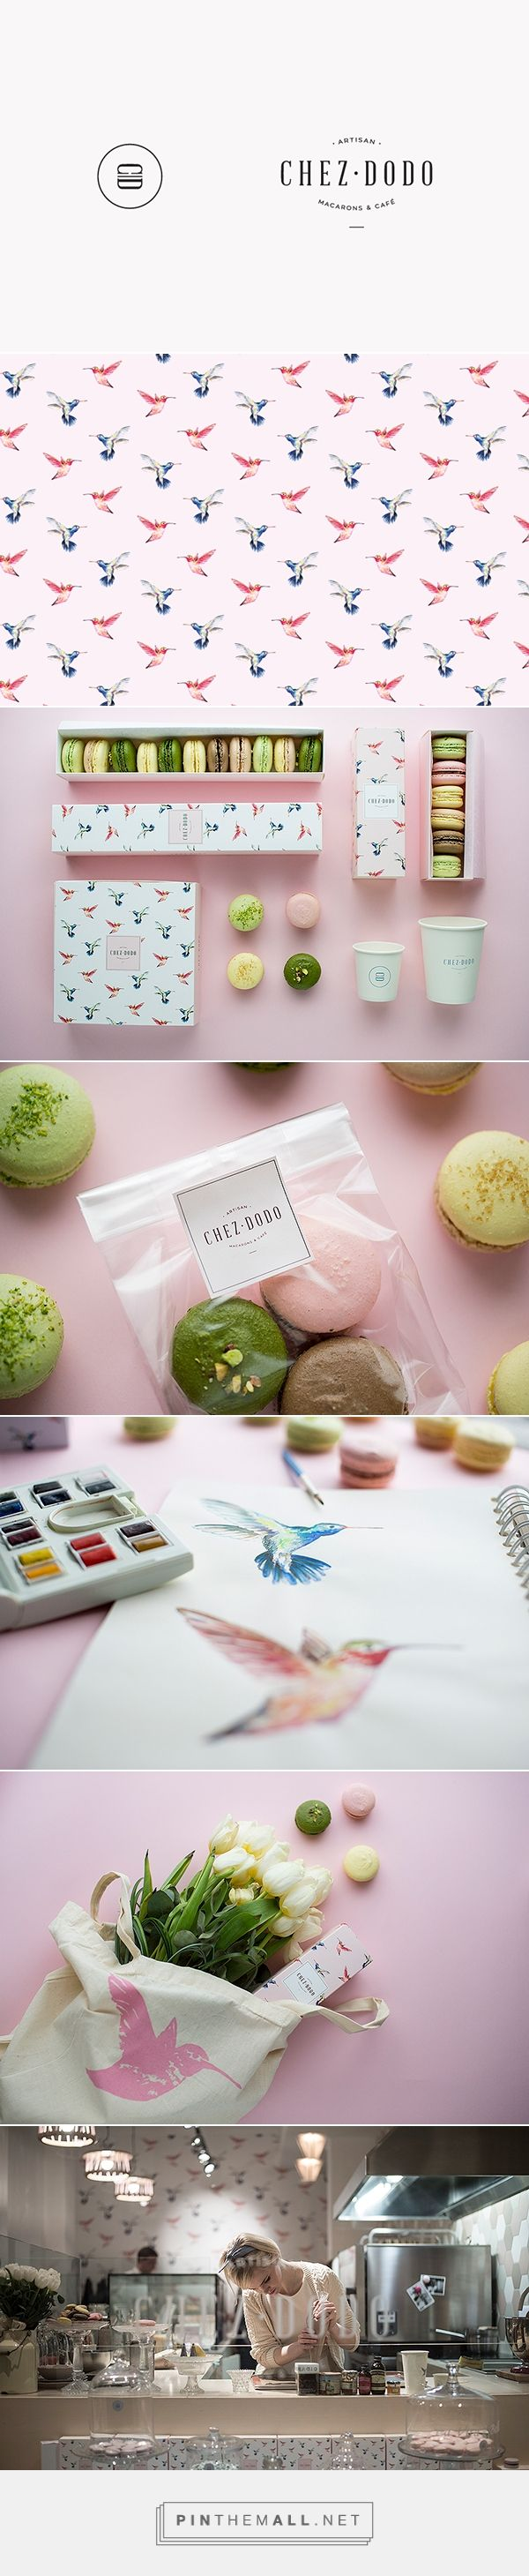 CHEZ DODO on Behance by Estzer Laki curated by Packaging Diva PD. Yummy macaroon or maracon packaging branding.